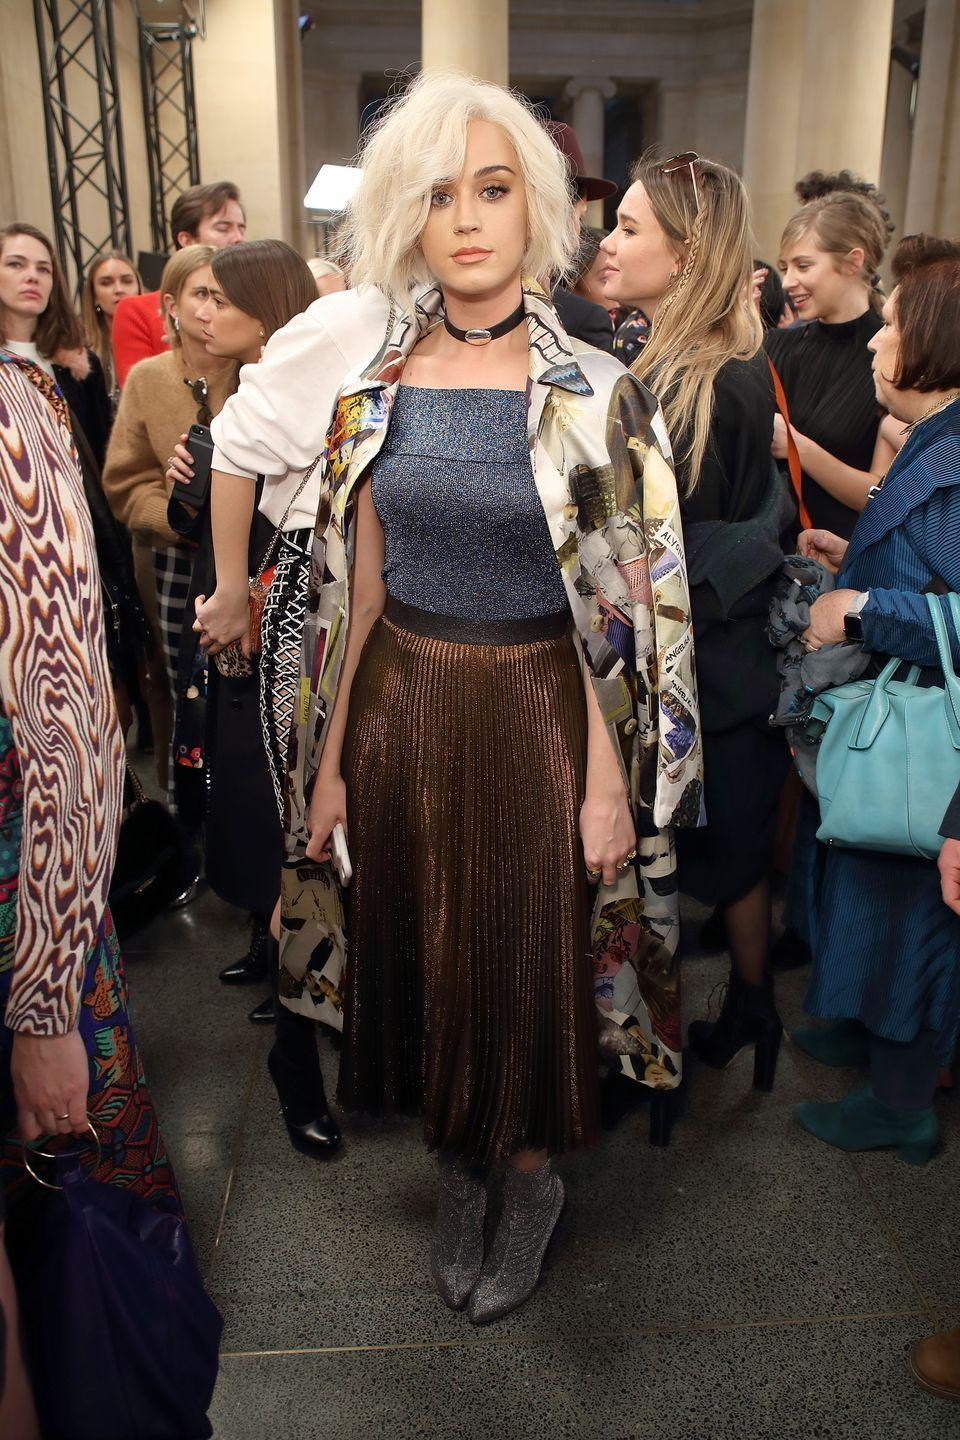 <p>Katy Perry attends the Christopher Kane show during the London Fashion Week February 2017 collections on February 20, 2017 in London, England.</p>